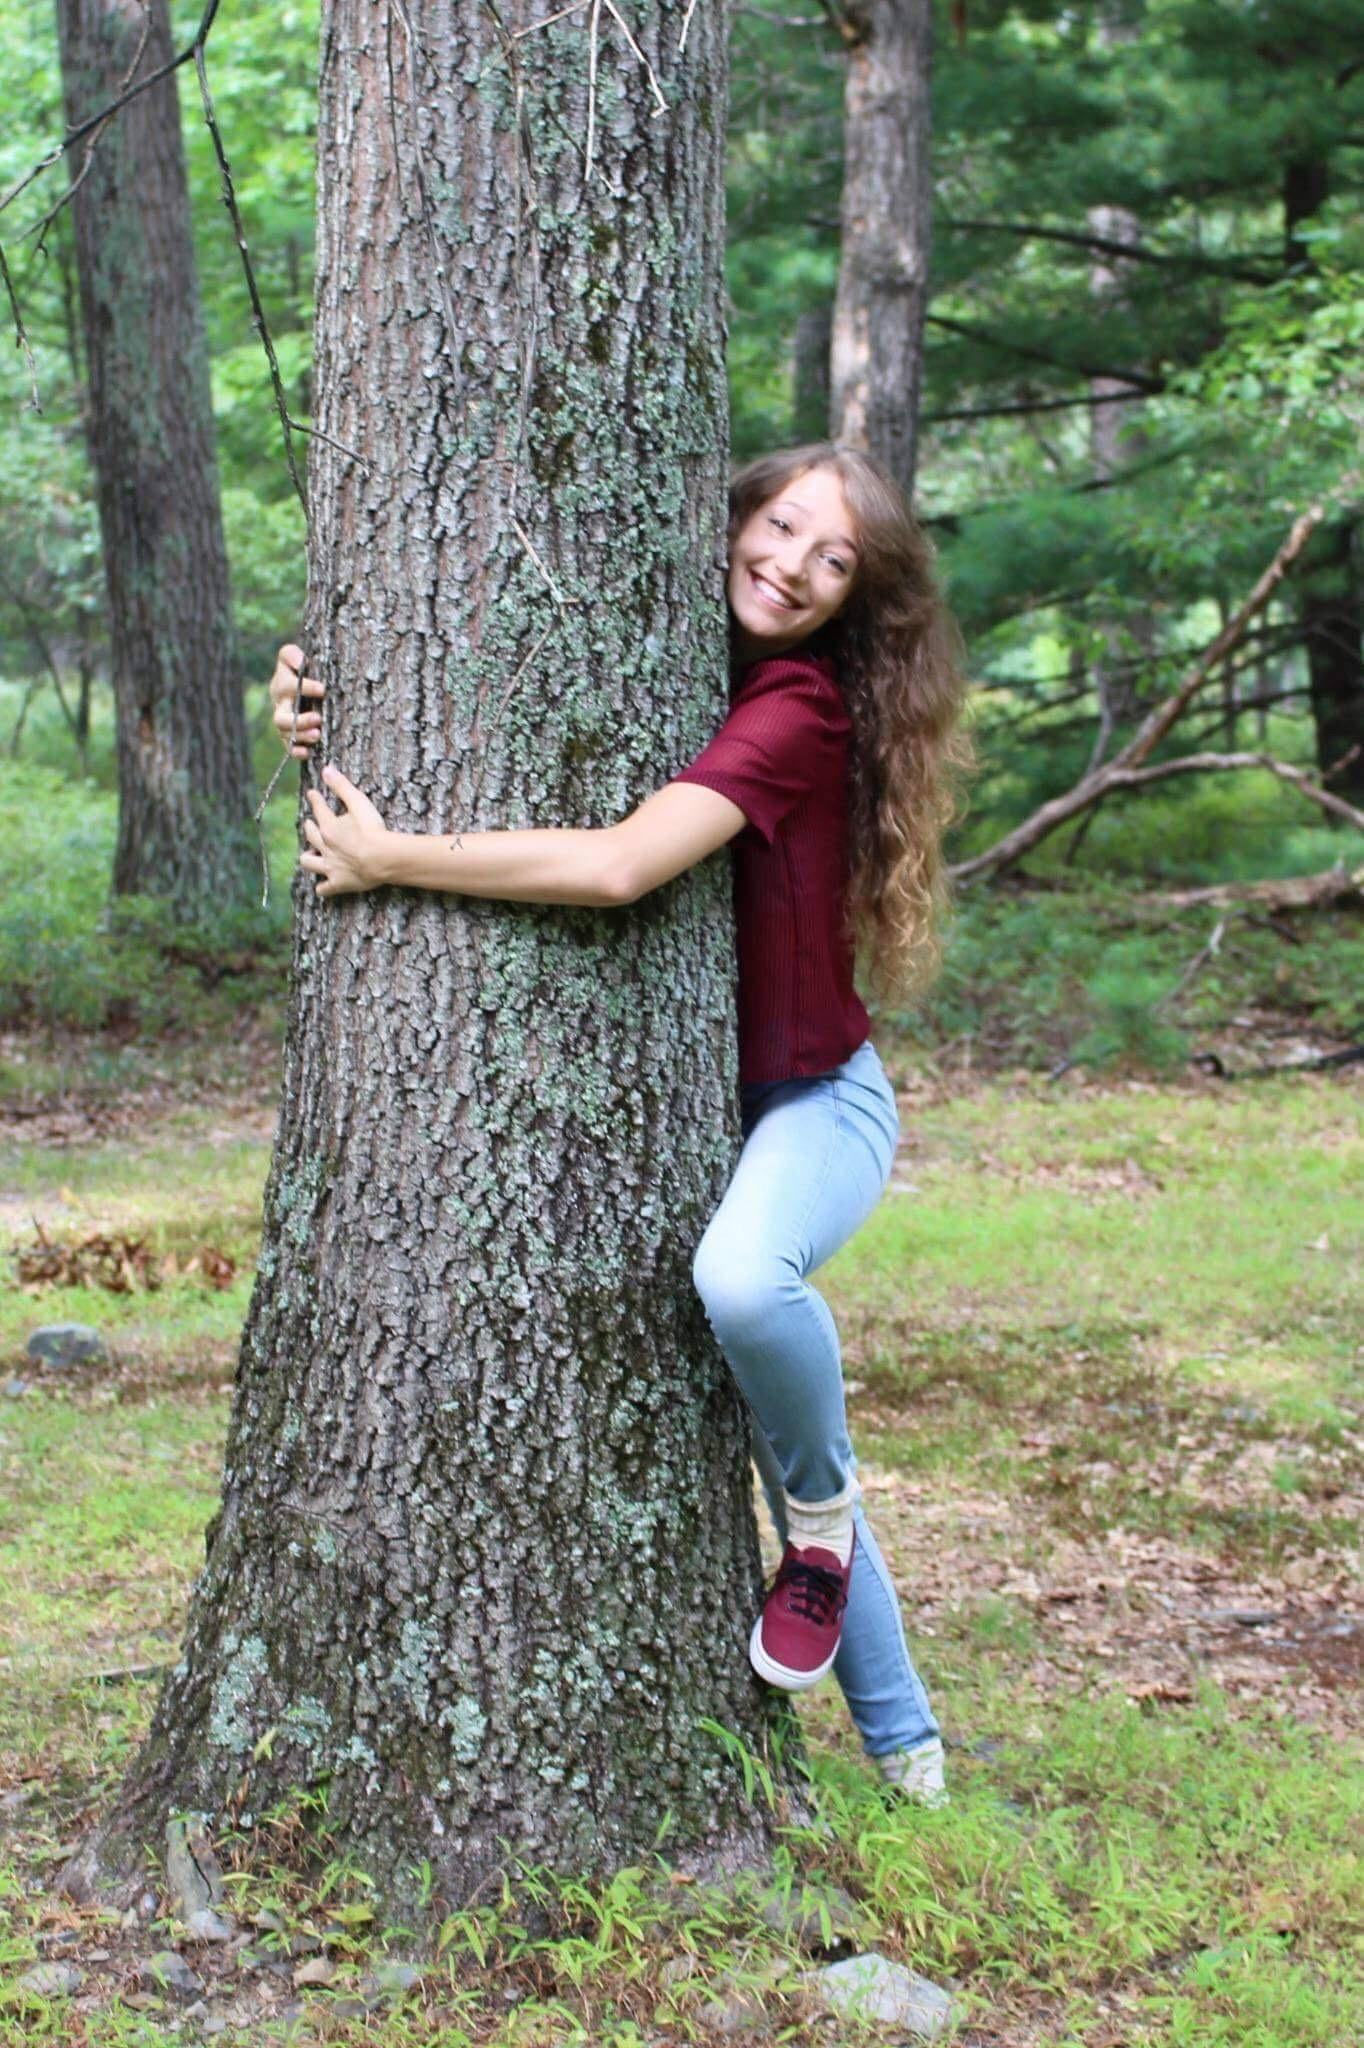 Ashley the tree hugger